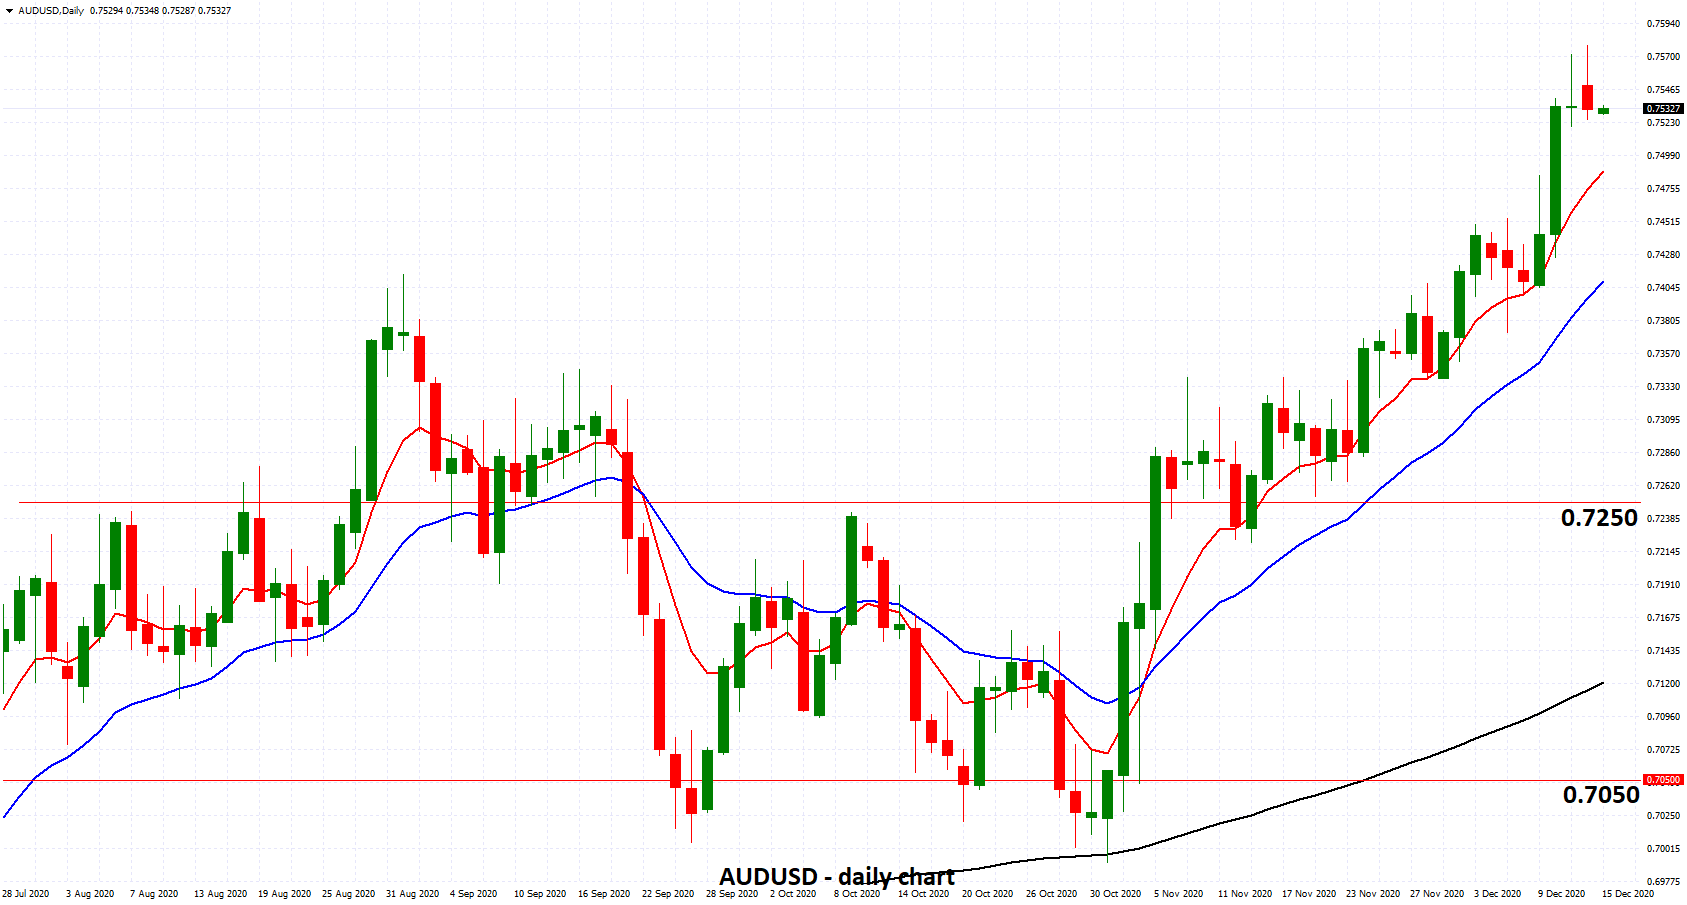 AUDUSD - Eases from Near 0.76 as Australia Out of Recession